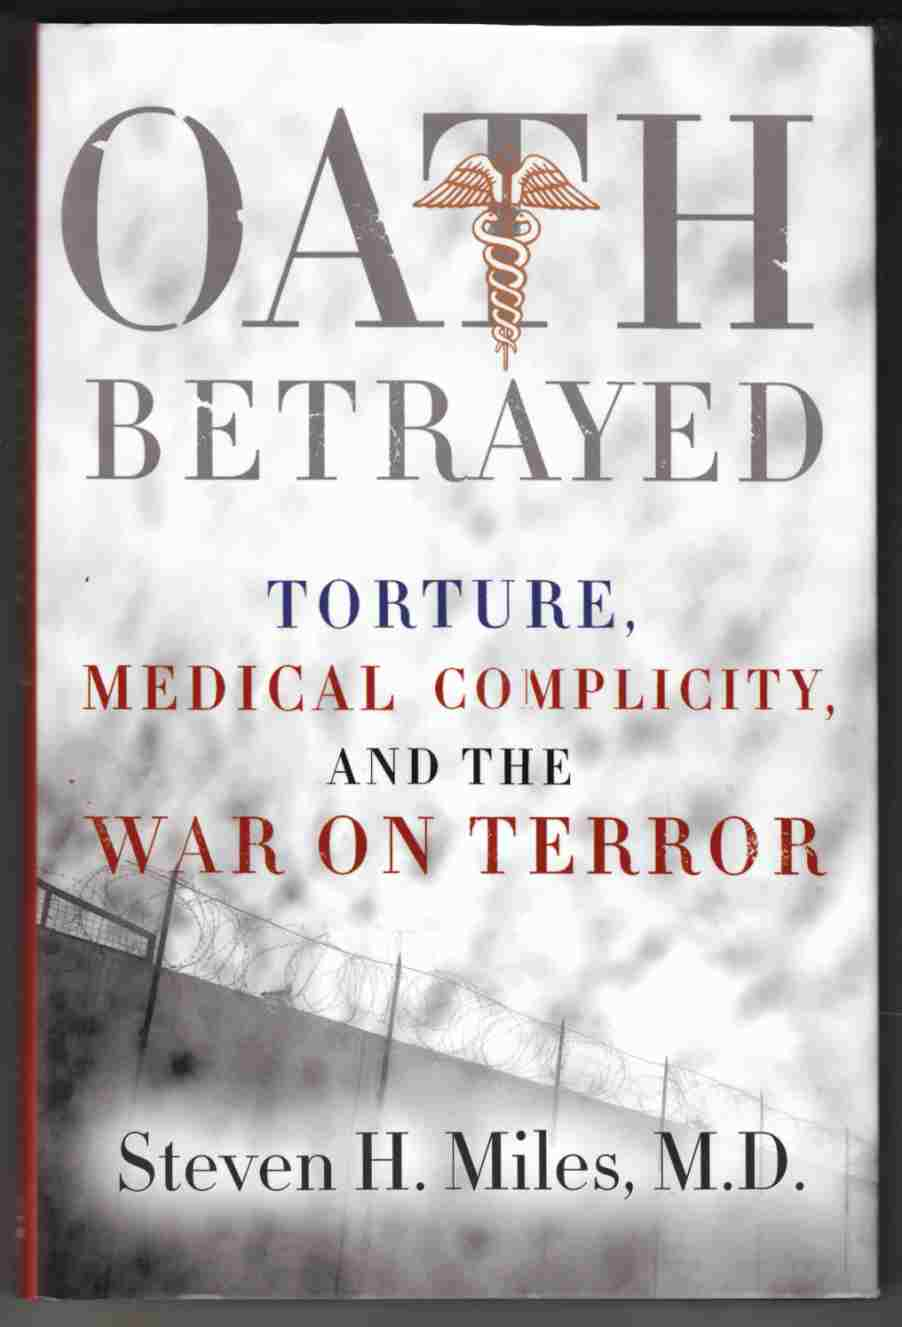 Image for Oath Betrayed Torture, Medical Complicity, and the War on Terror